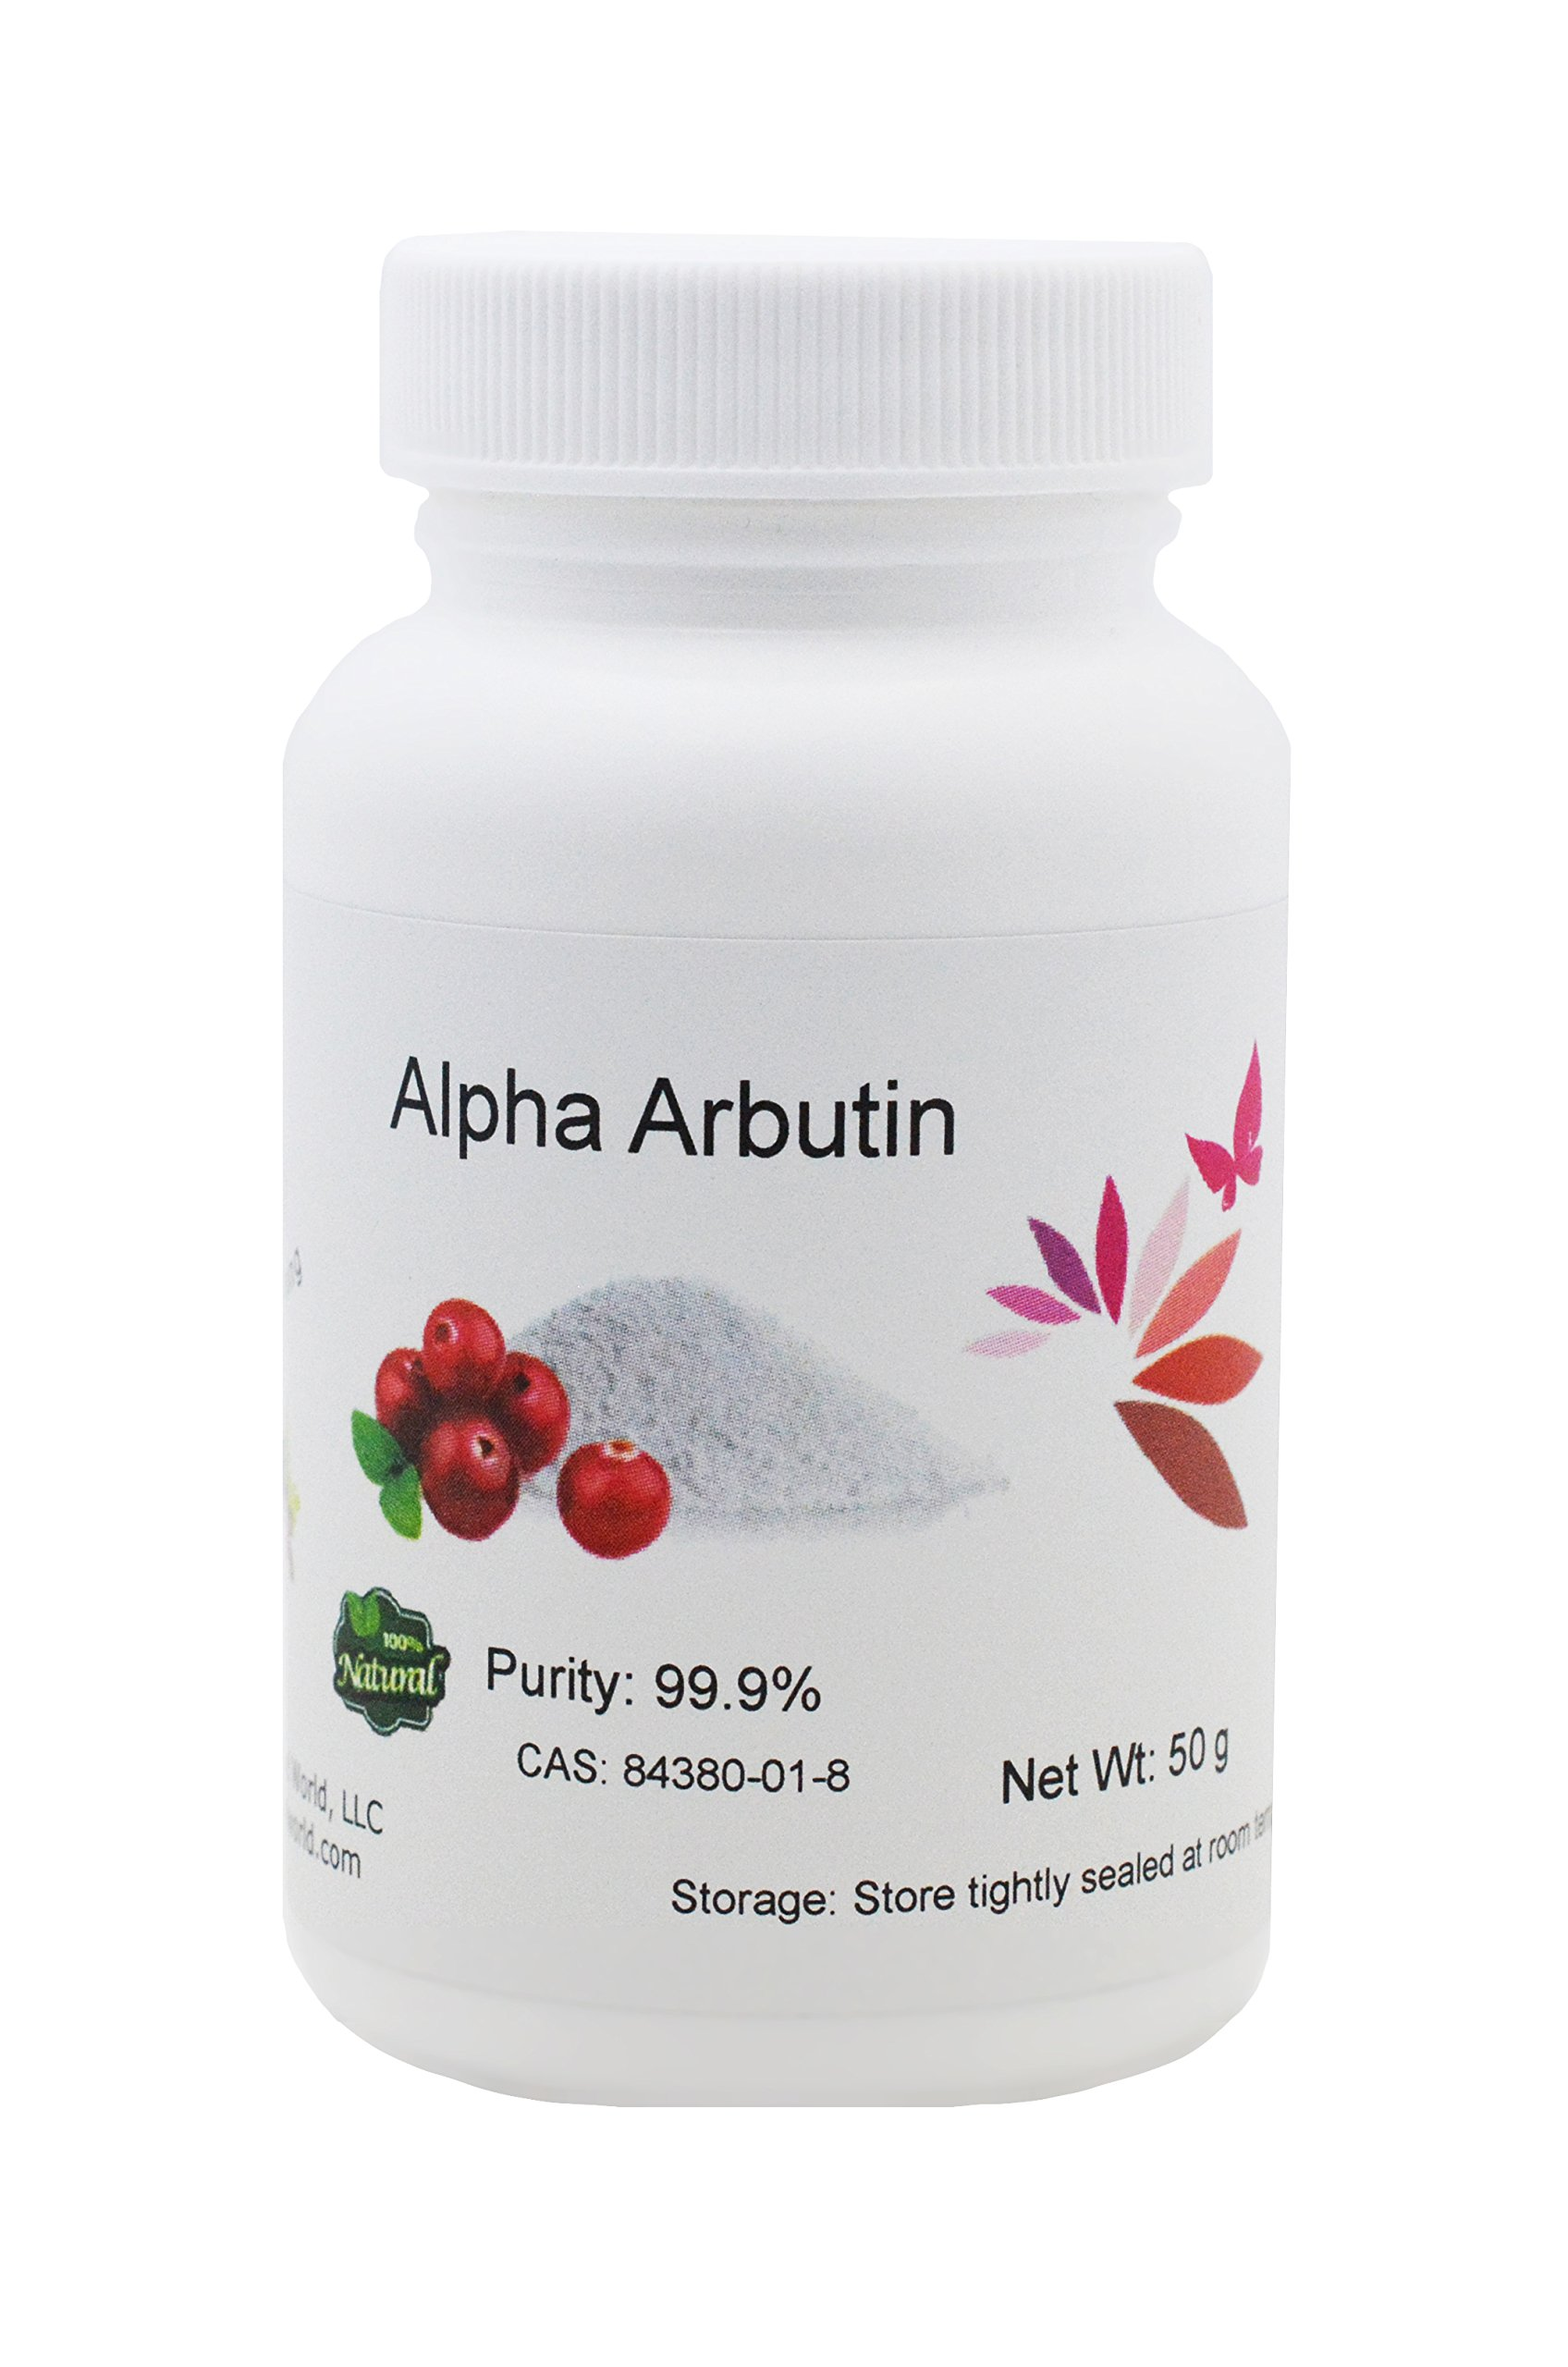 Pure Alpha-Arbutin Powder, 100 grams, Quality Guaranteed! Good for Skin Lightening by L'eternel World (Image #1)